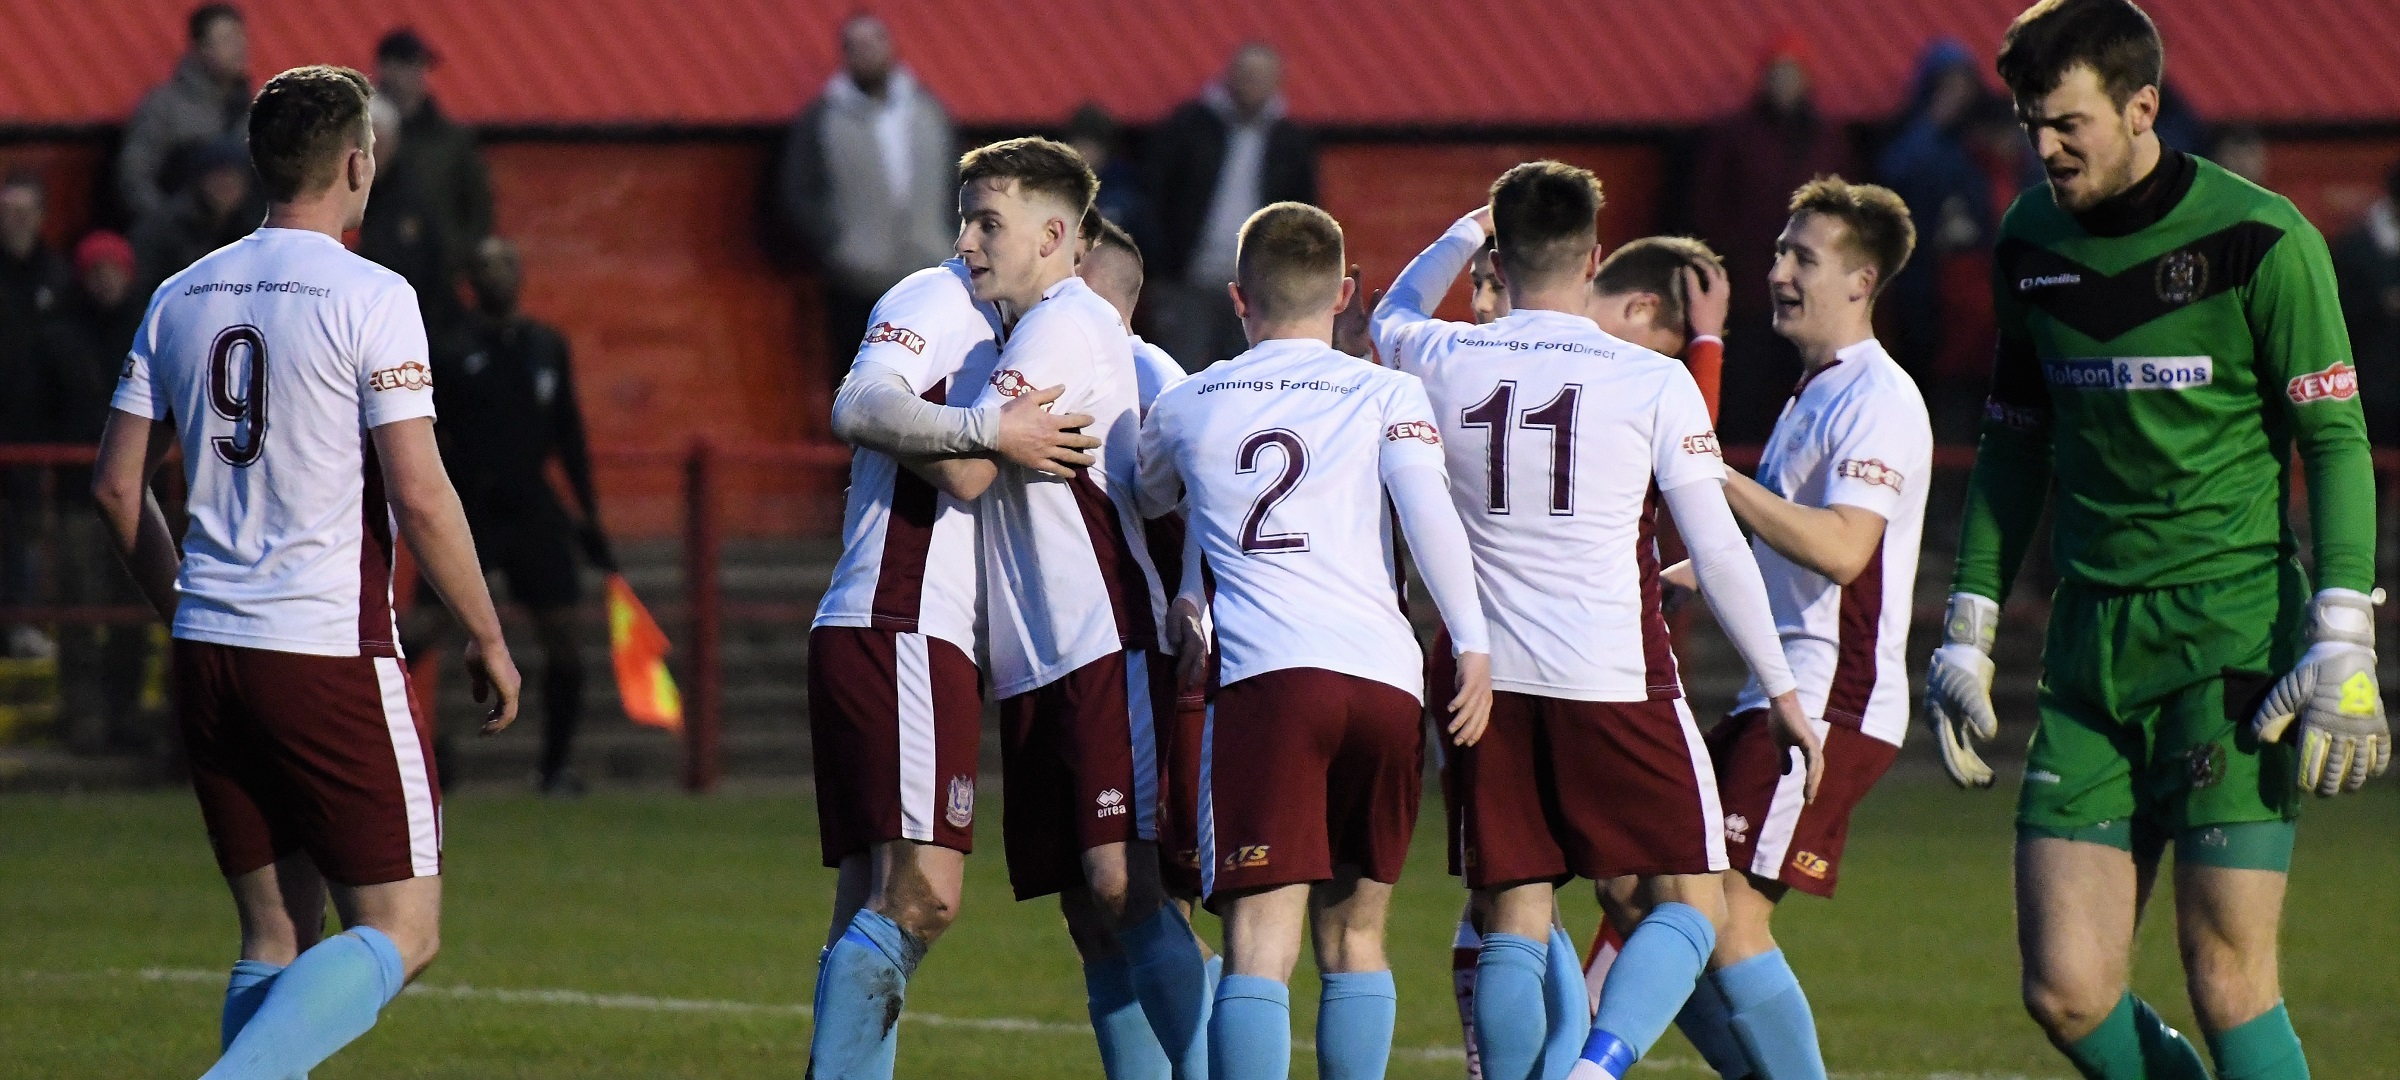 Workington 1-5 South Shields: Brilliant Mariners into semi-finals